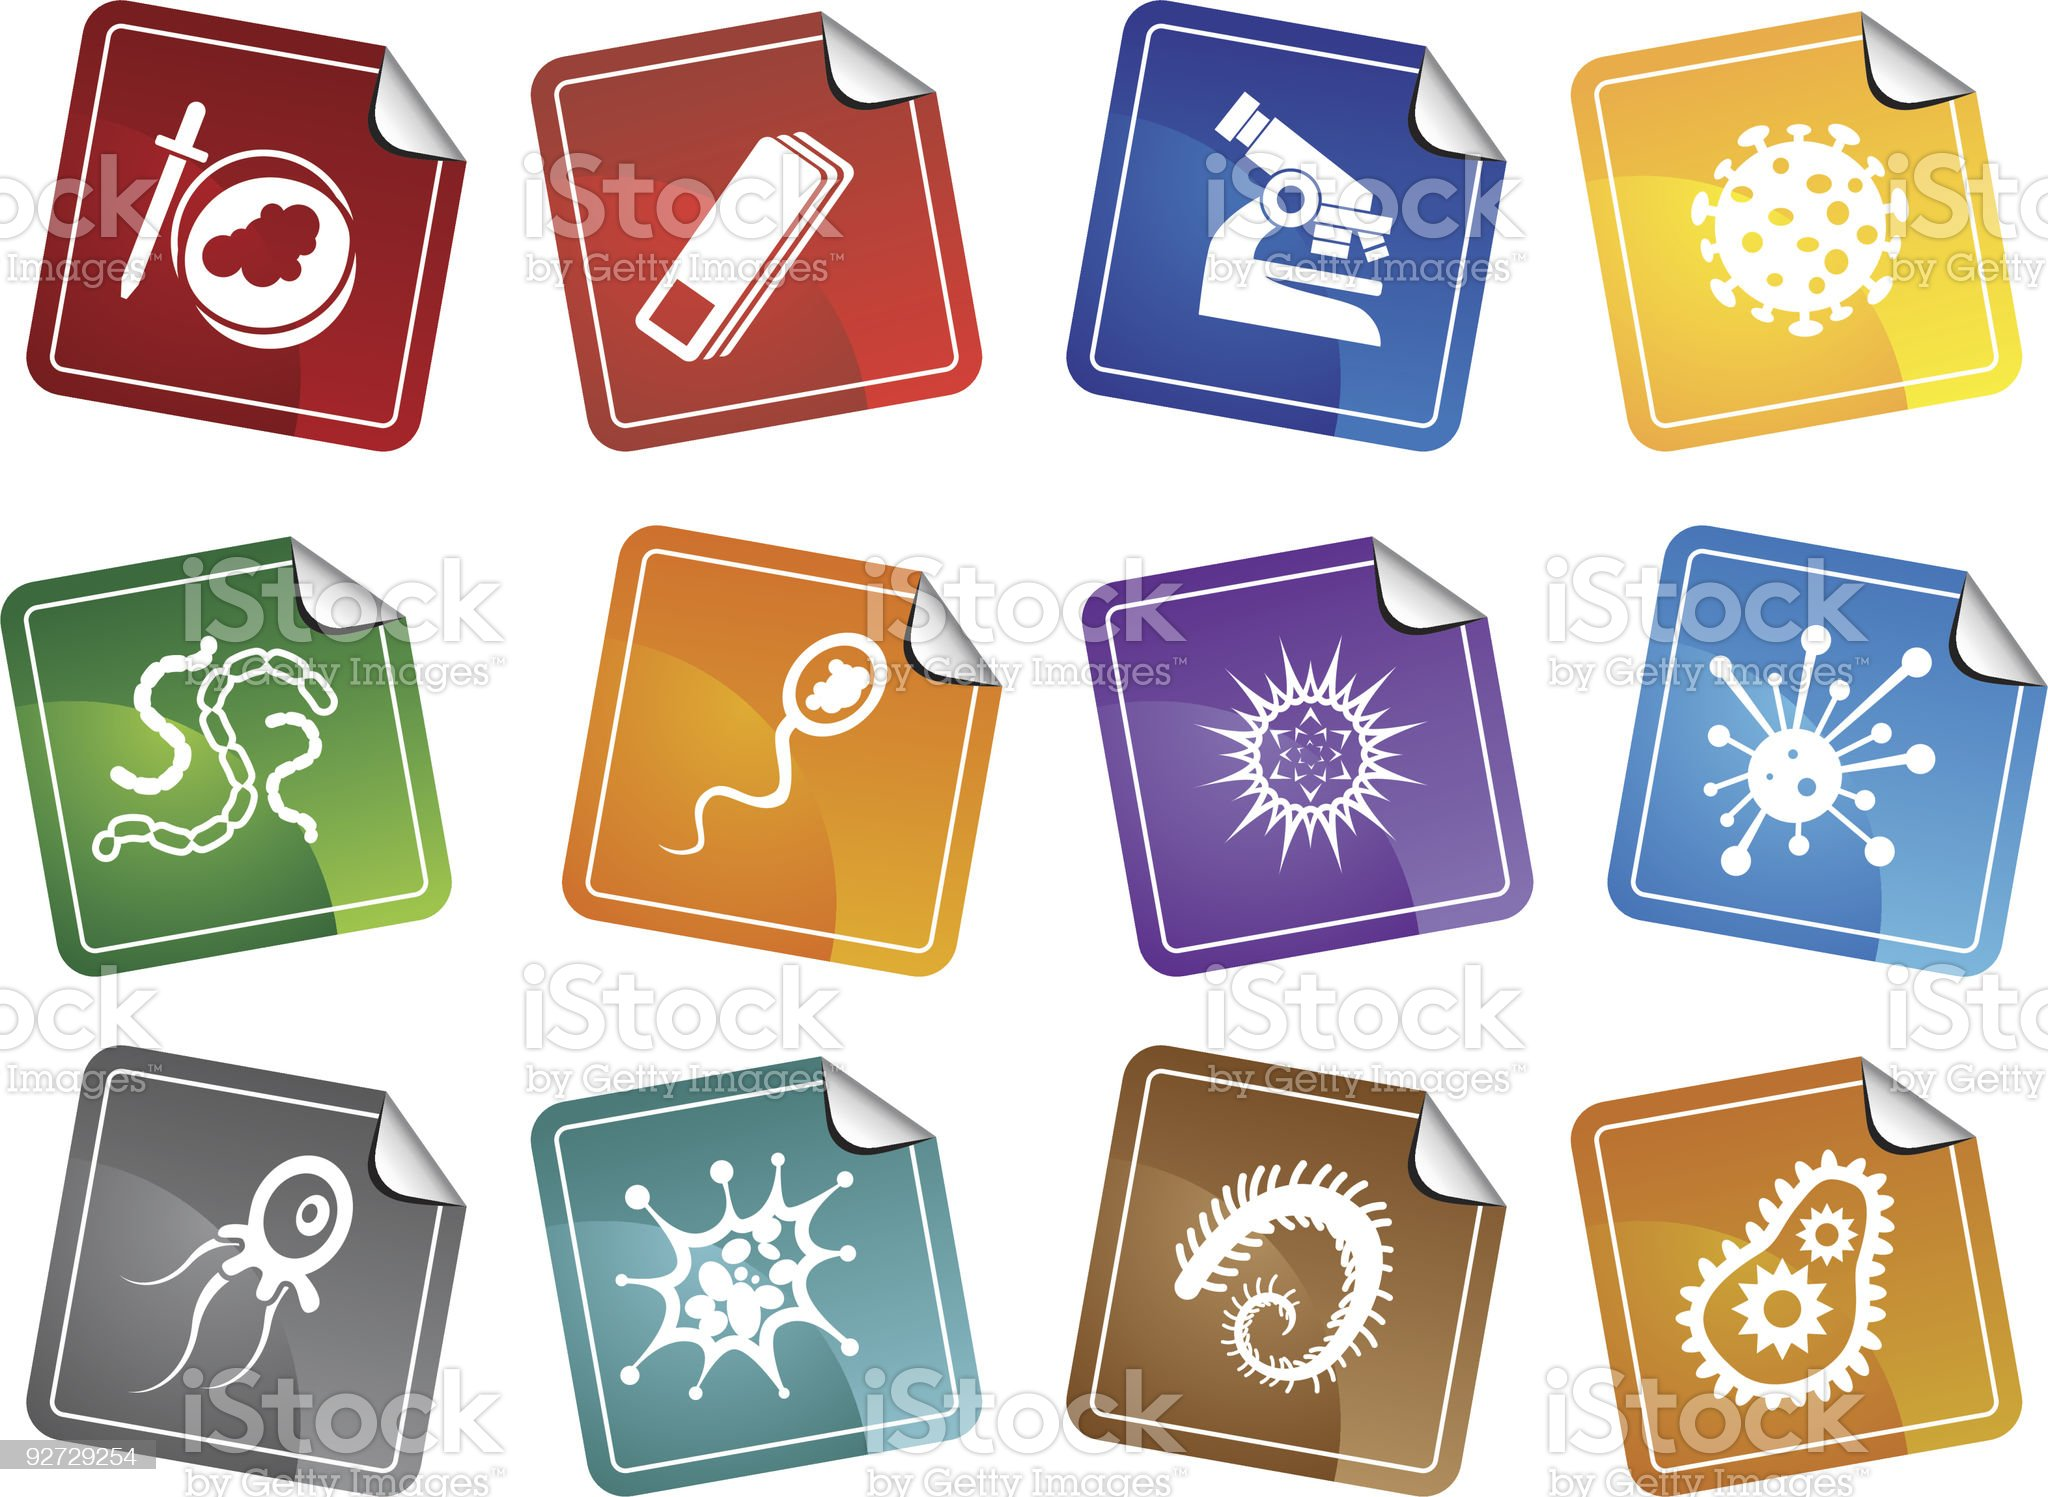 Microscopic Sticker Set royalty-free stock vector art